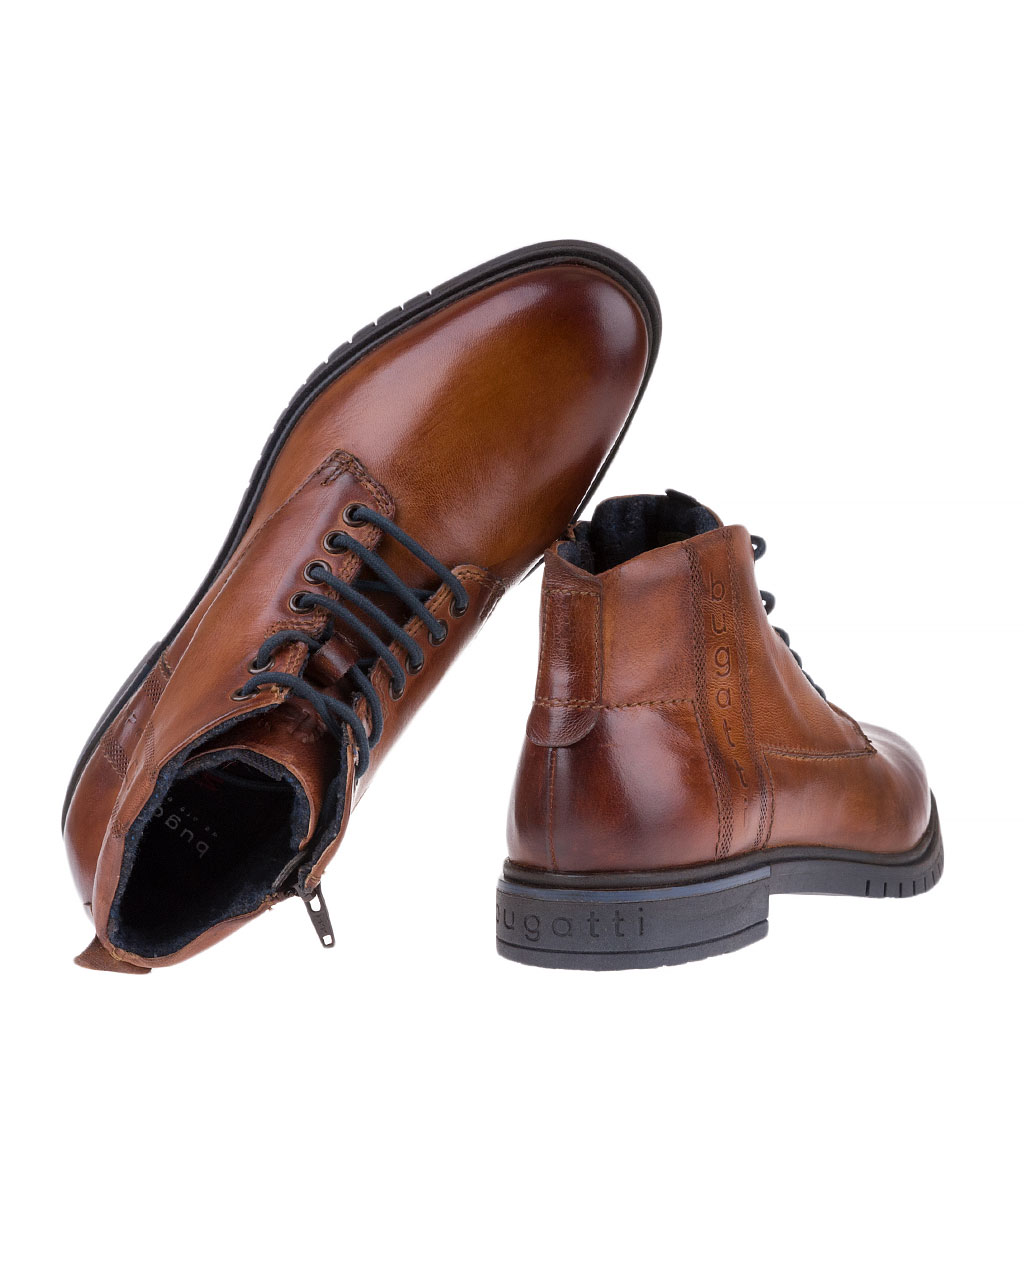 Men's shoes 311-78030-3500-6300/19-20-2 (2)